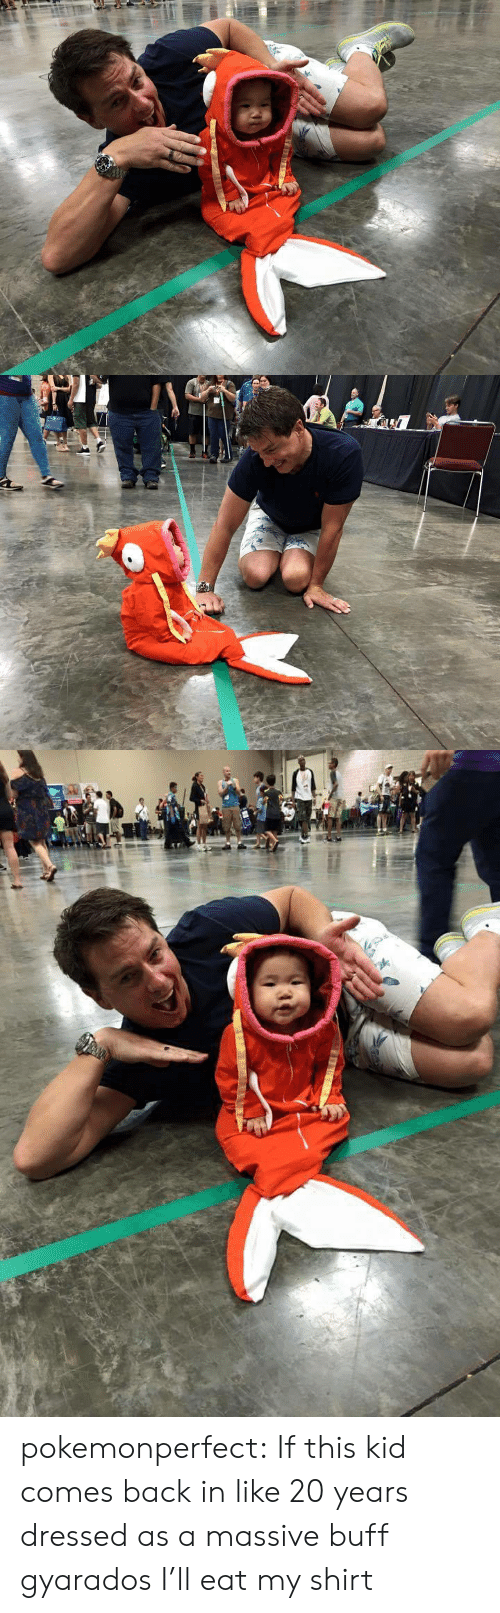 Tumblr, Blog, and Http: pokemonperfect:  If this kid comes back in like 20 years dressed as a massive buff gyarados I'll eat my shirt